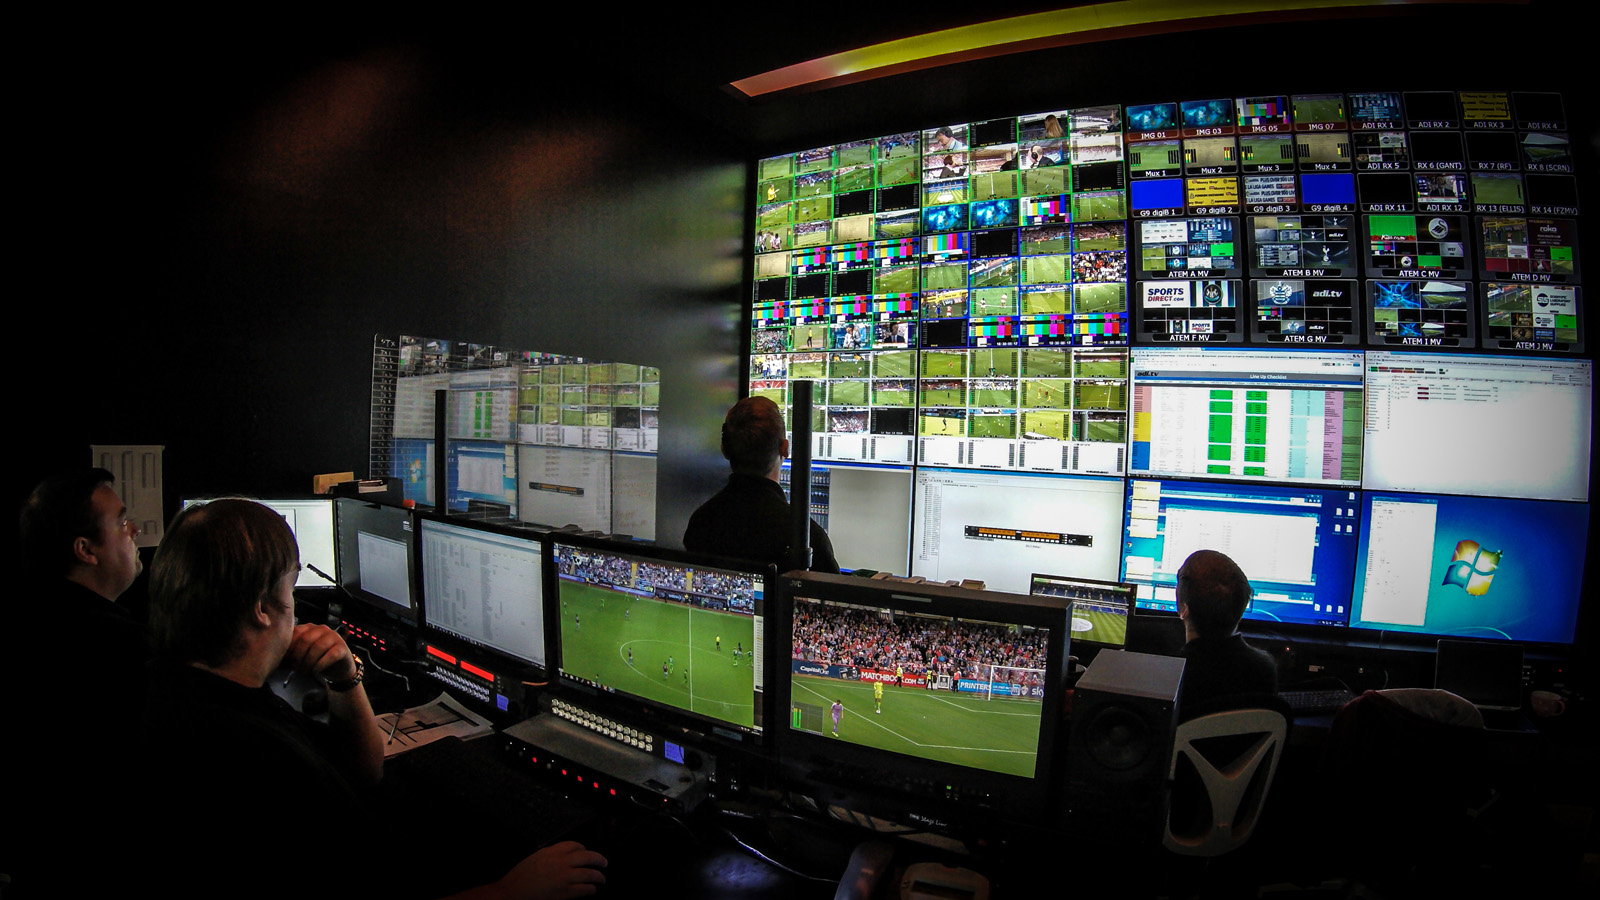 ADI wows stadium fans with broadcast-quality sports video 2